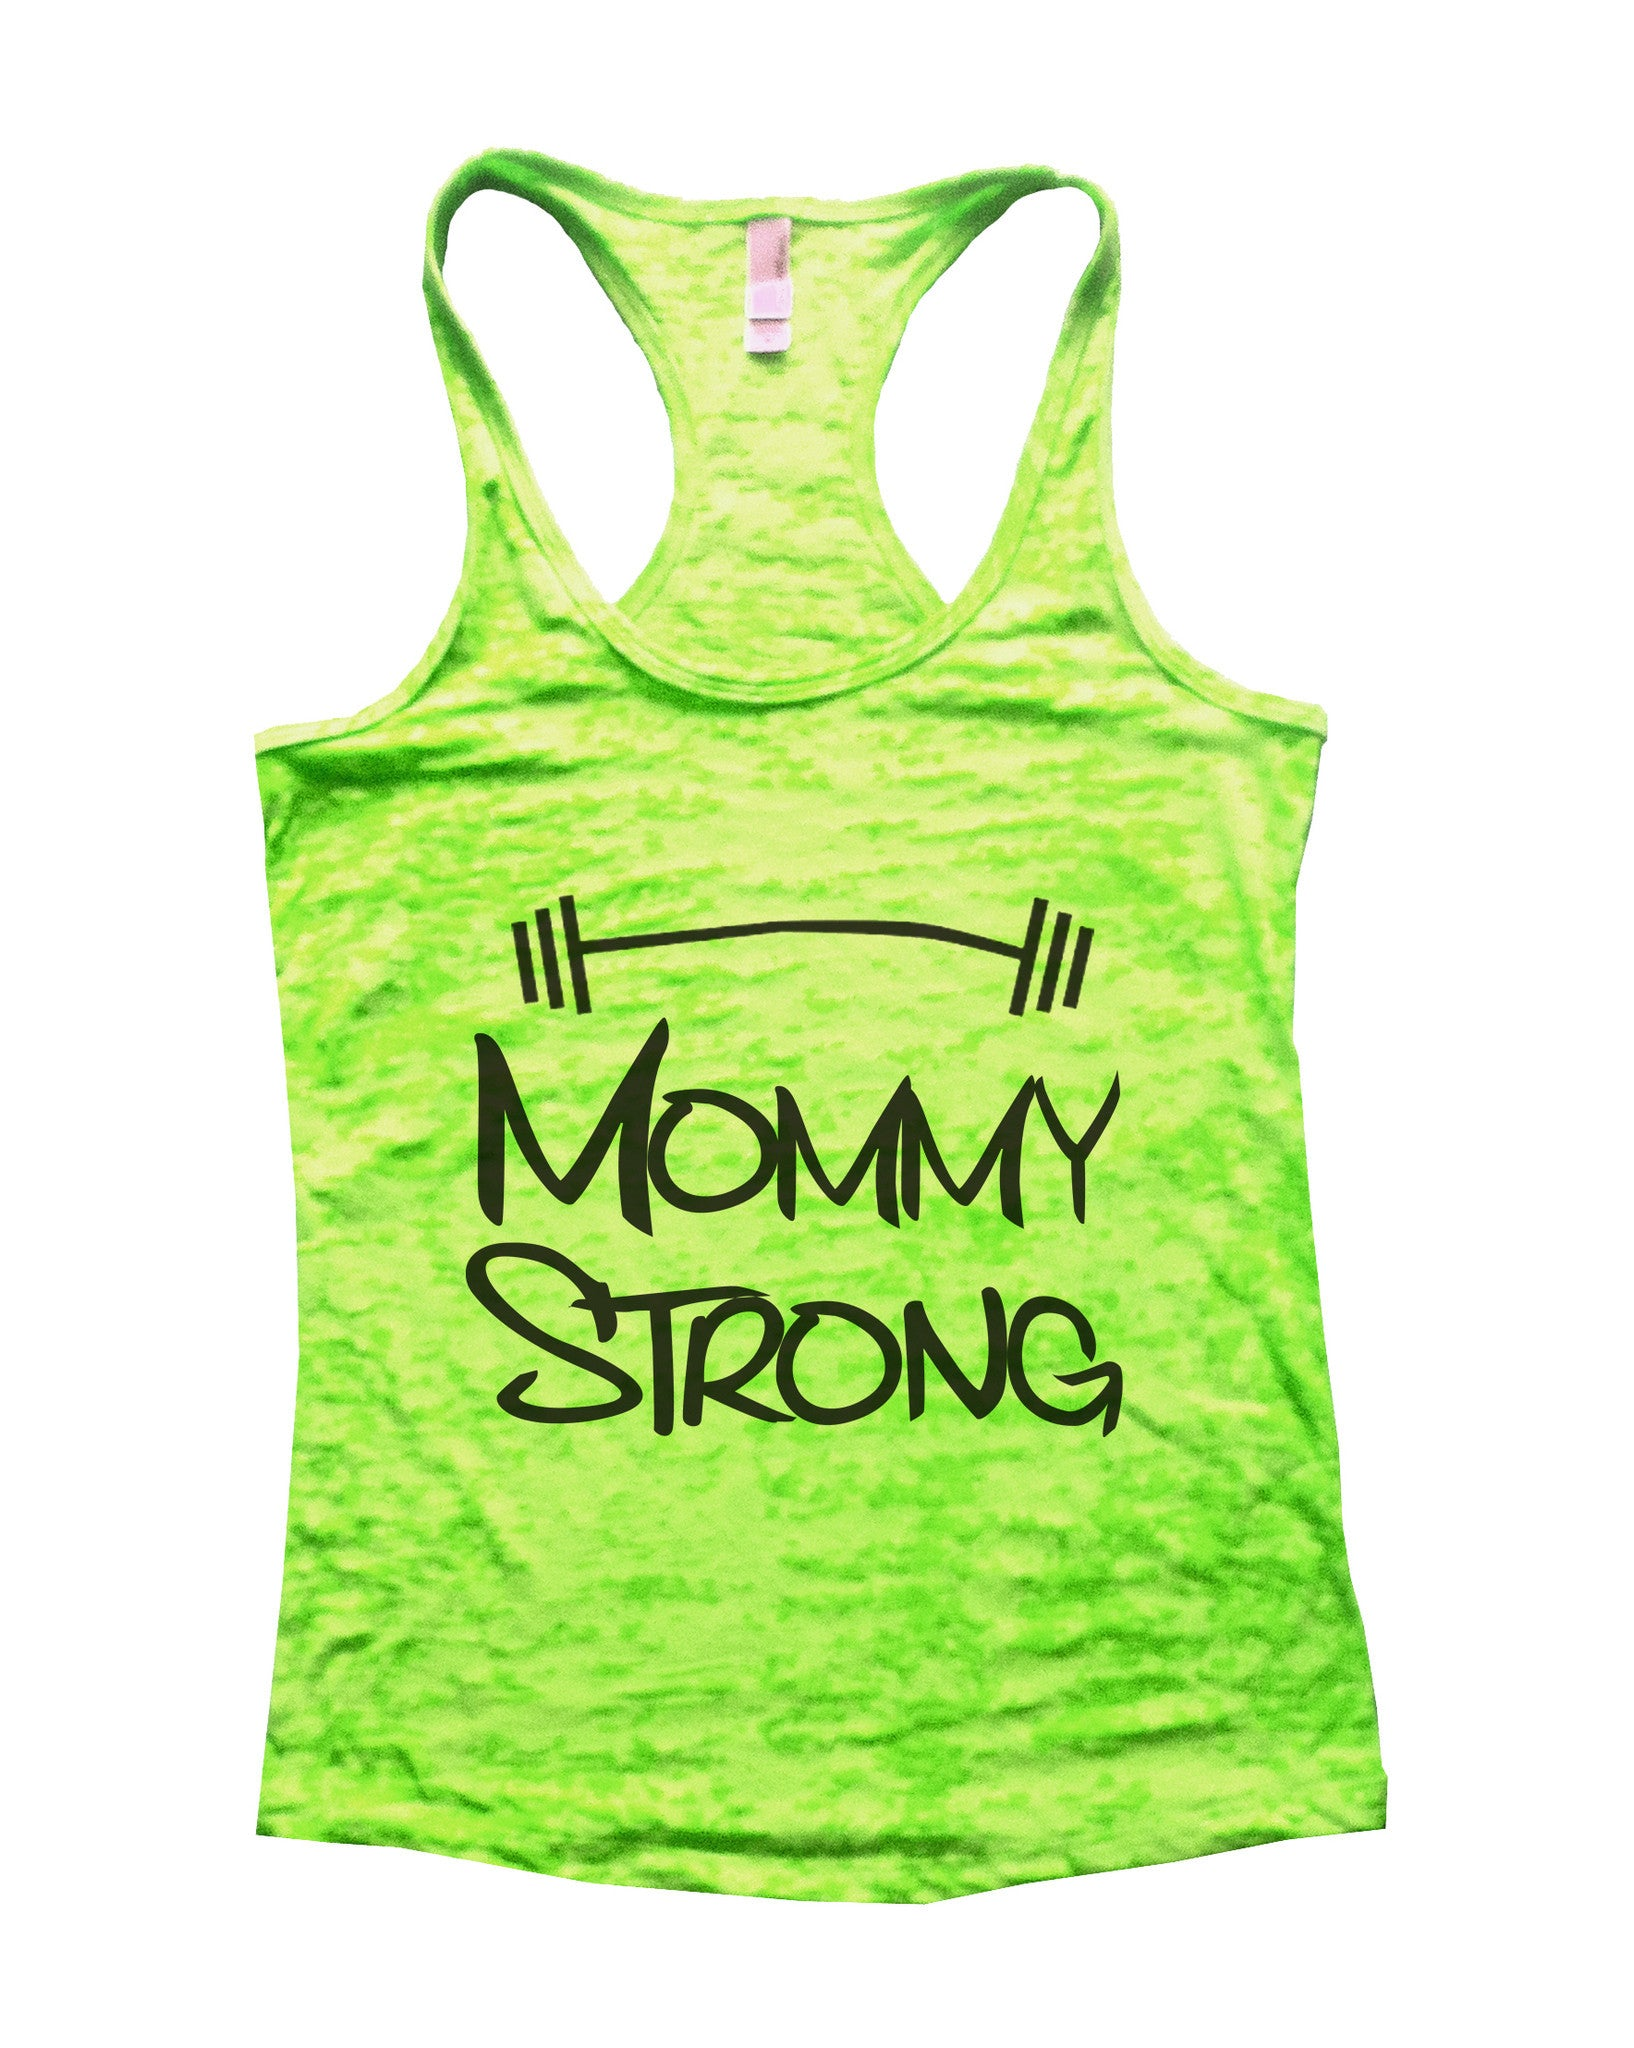 Mommy Strong Mothers Motivational Burnout Tank Top By BurnoutTankTops.com - 515 - Funny Shirts Tank Tops Burnouts and Triblends  - 1